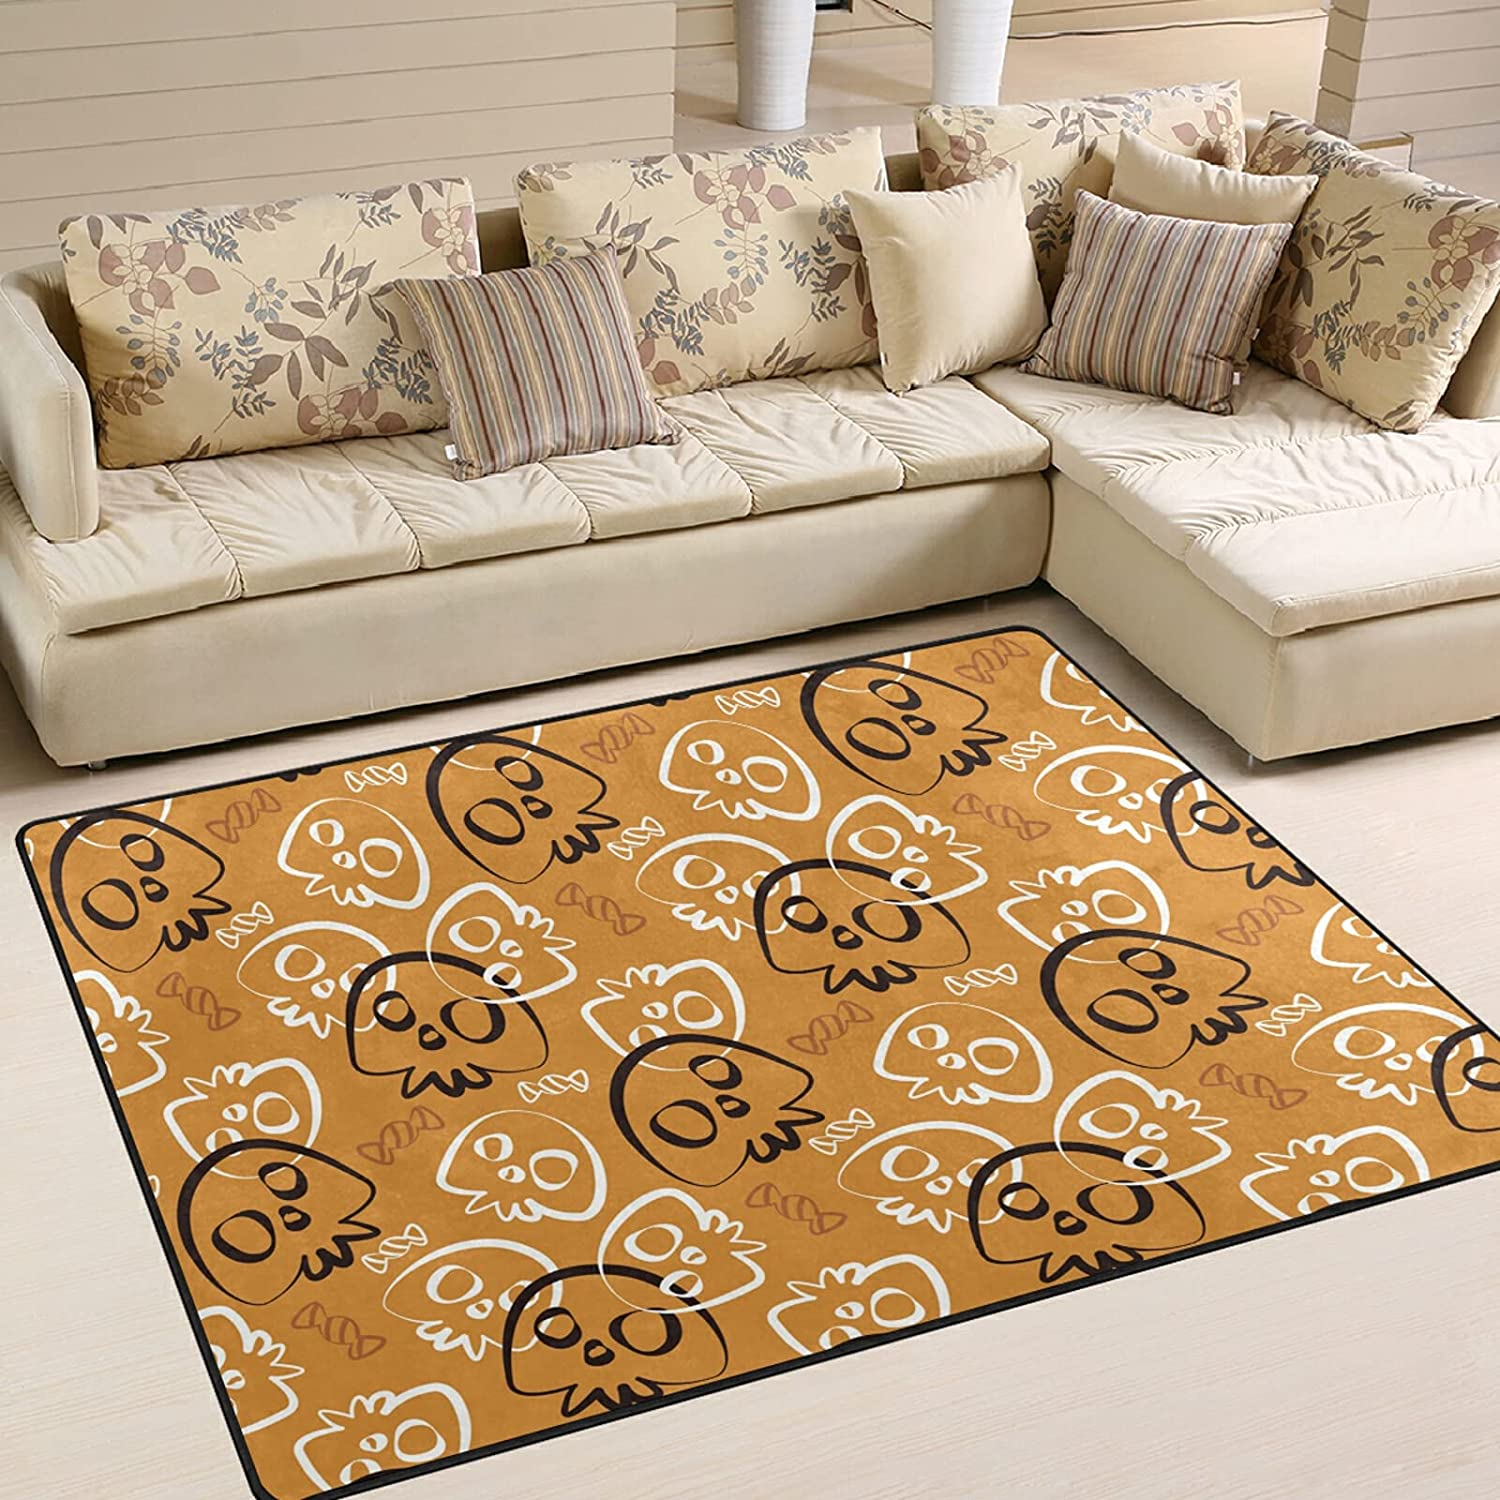 Modern Area Challenge the lowest price of Japan ☆ Rugs 5x7 Washable - S Muertos Halloween Day Dia Now on sale Dead